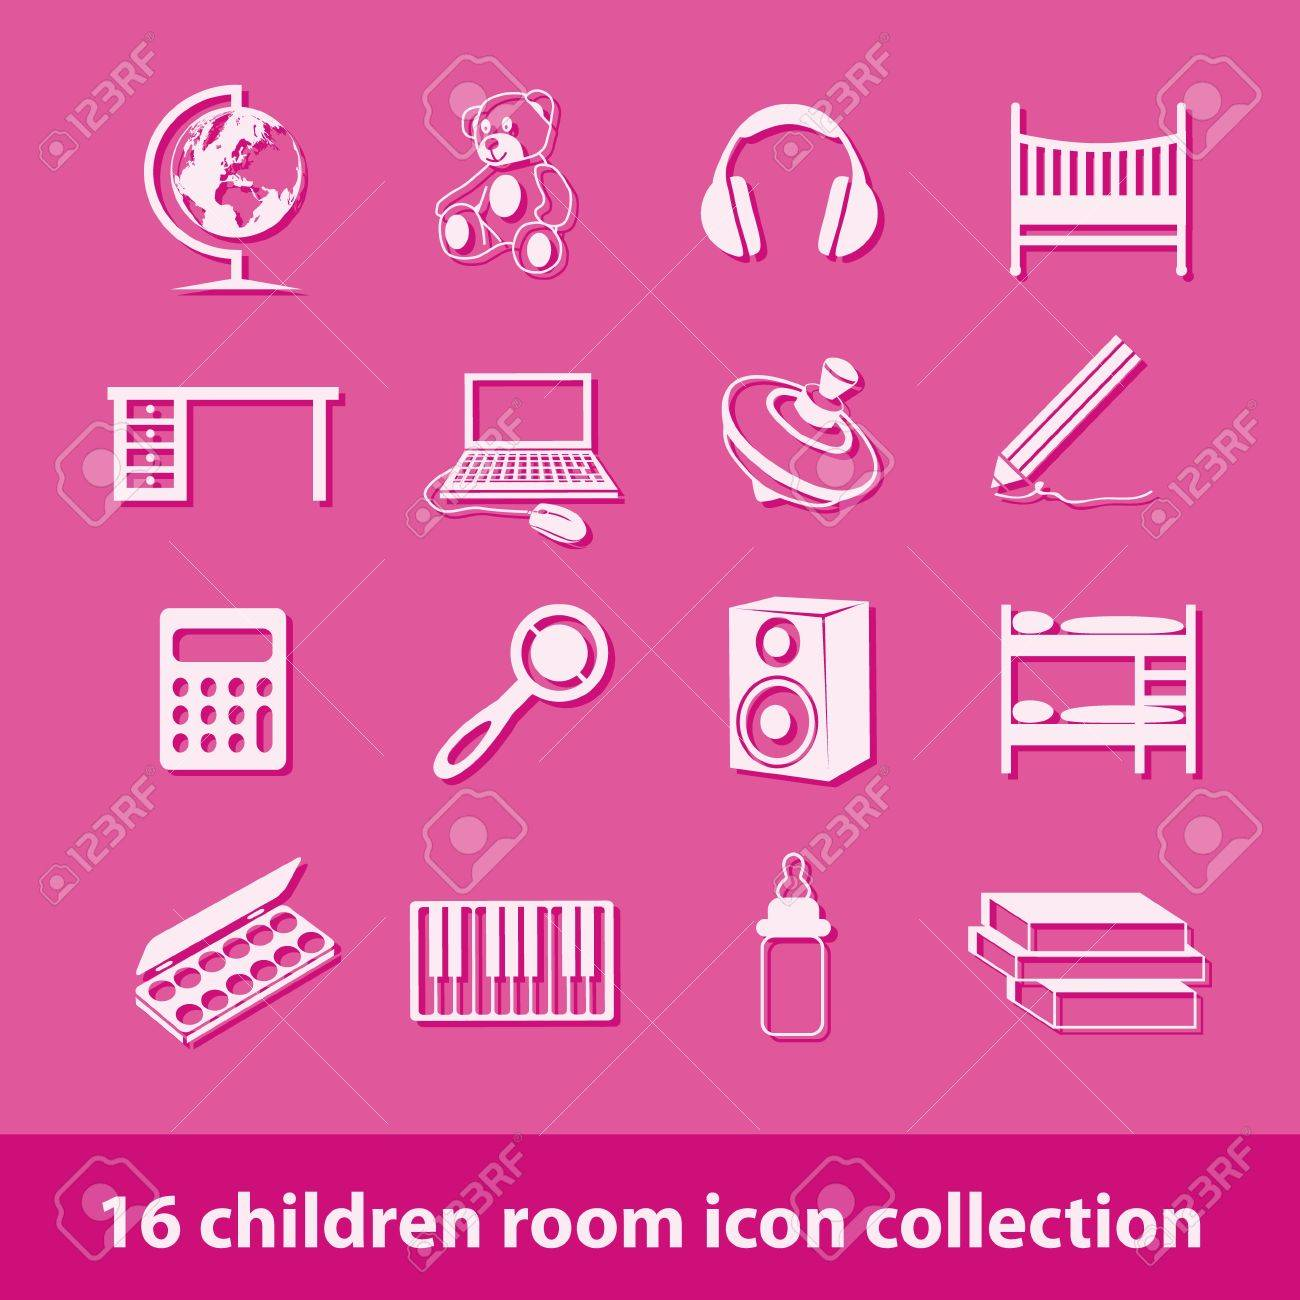 16 children room icon collection Stock Vector - 15682710